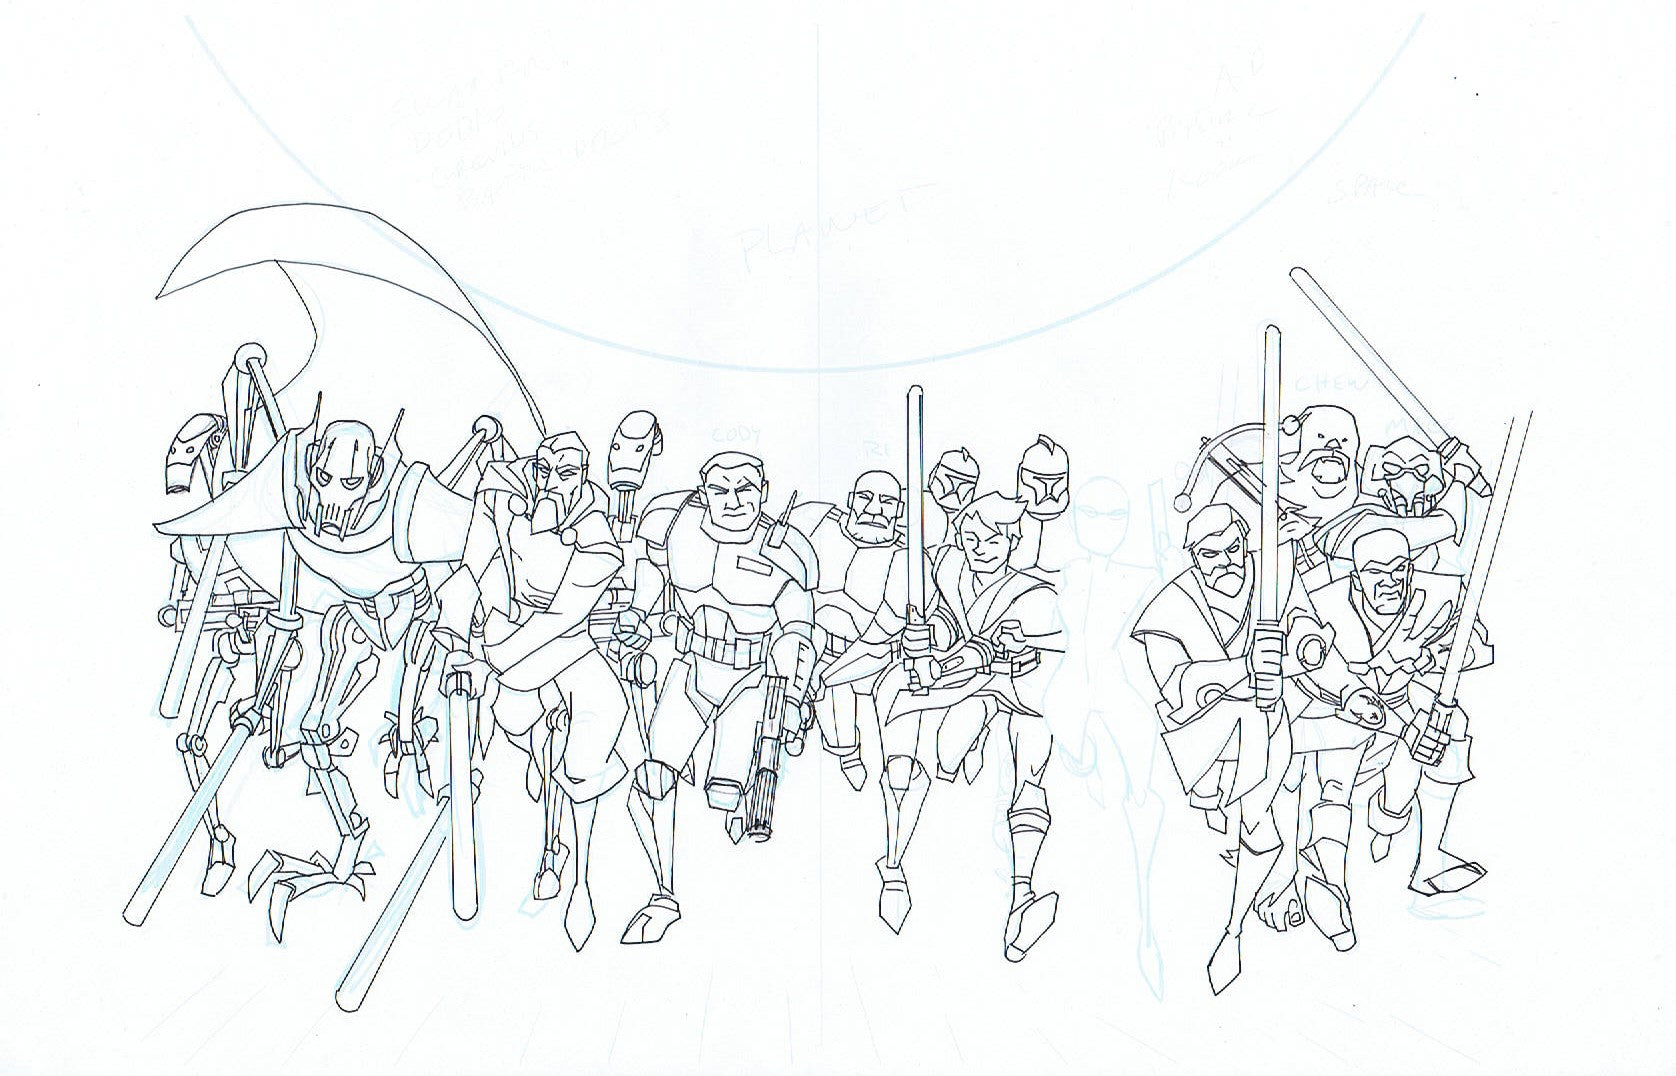 STAR WARS ADVENTURES: CLONE WARS #1 WRAP COVER + LAYOUT